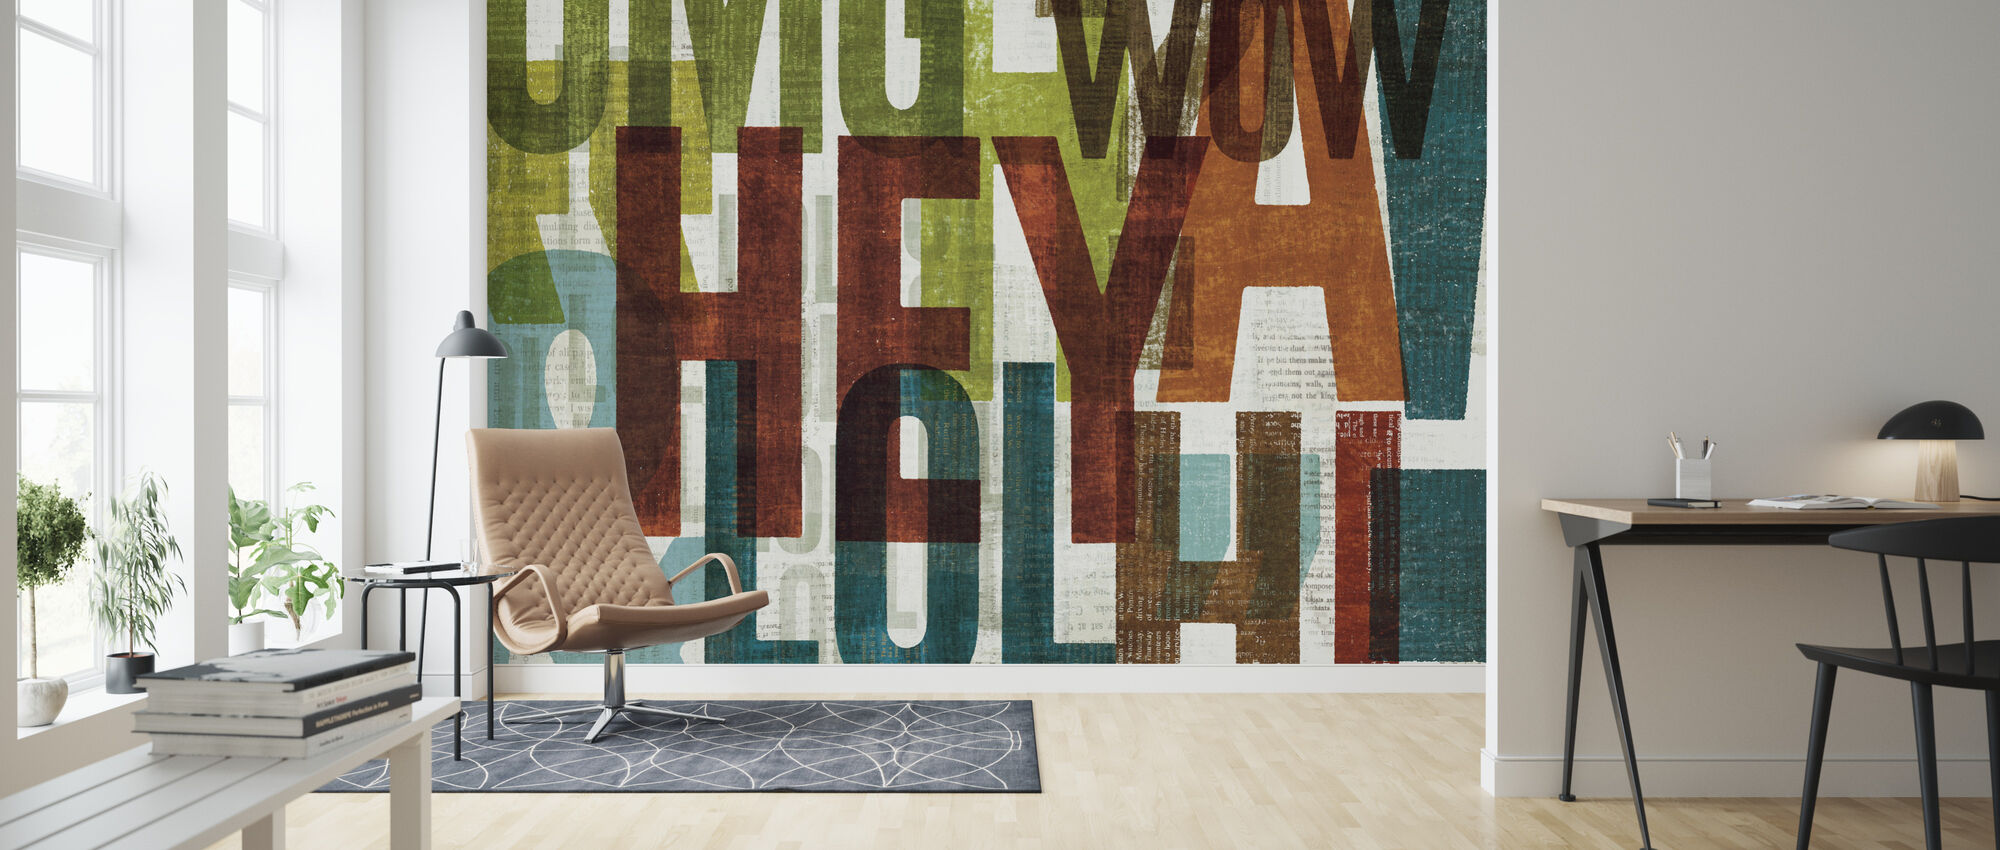 Punctuated Conversation I - Wallpaper - Living Room